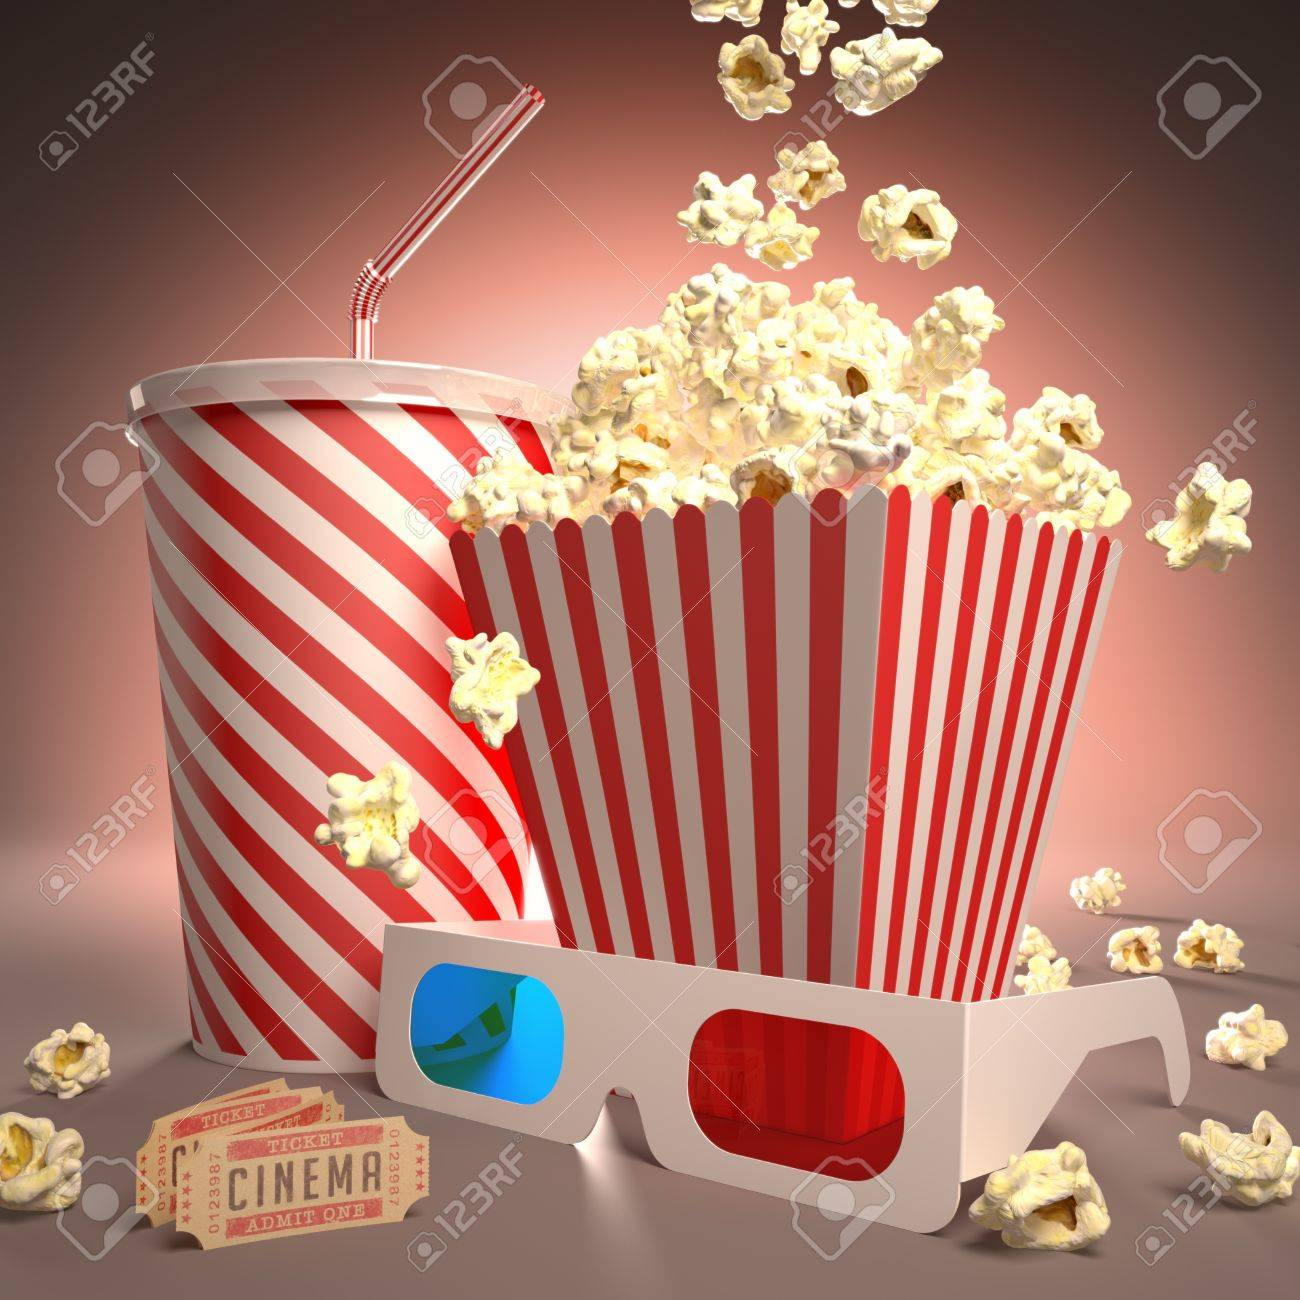 Popcorn, soda, 3D glasses and movie tickets, ready for the film. - 16005225